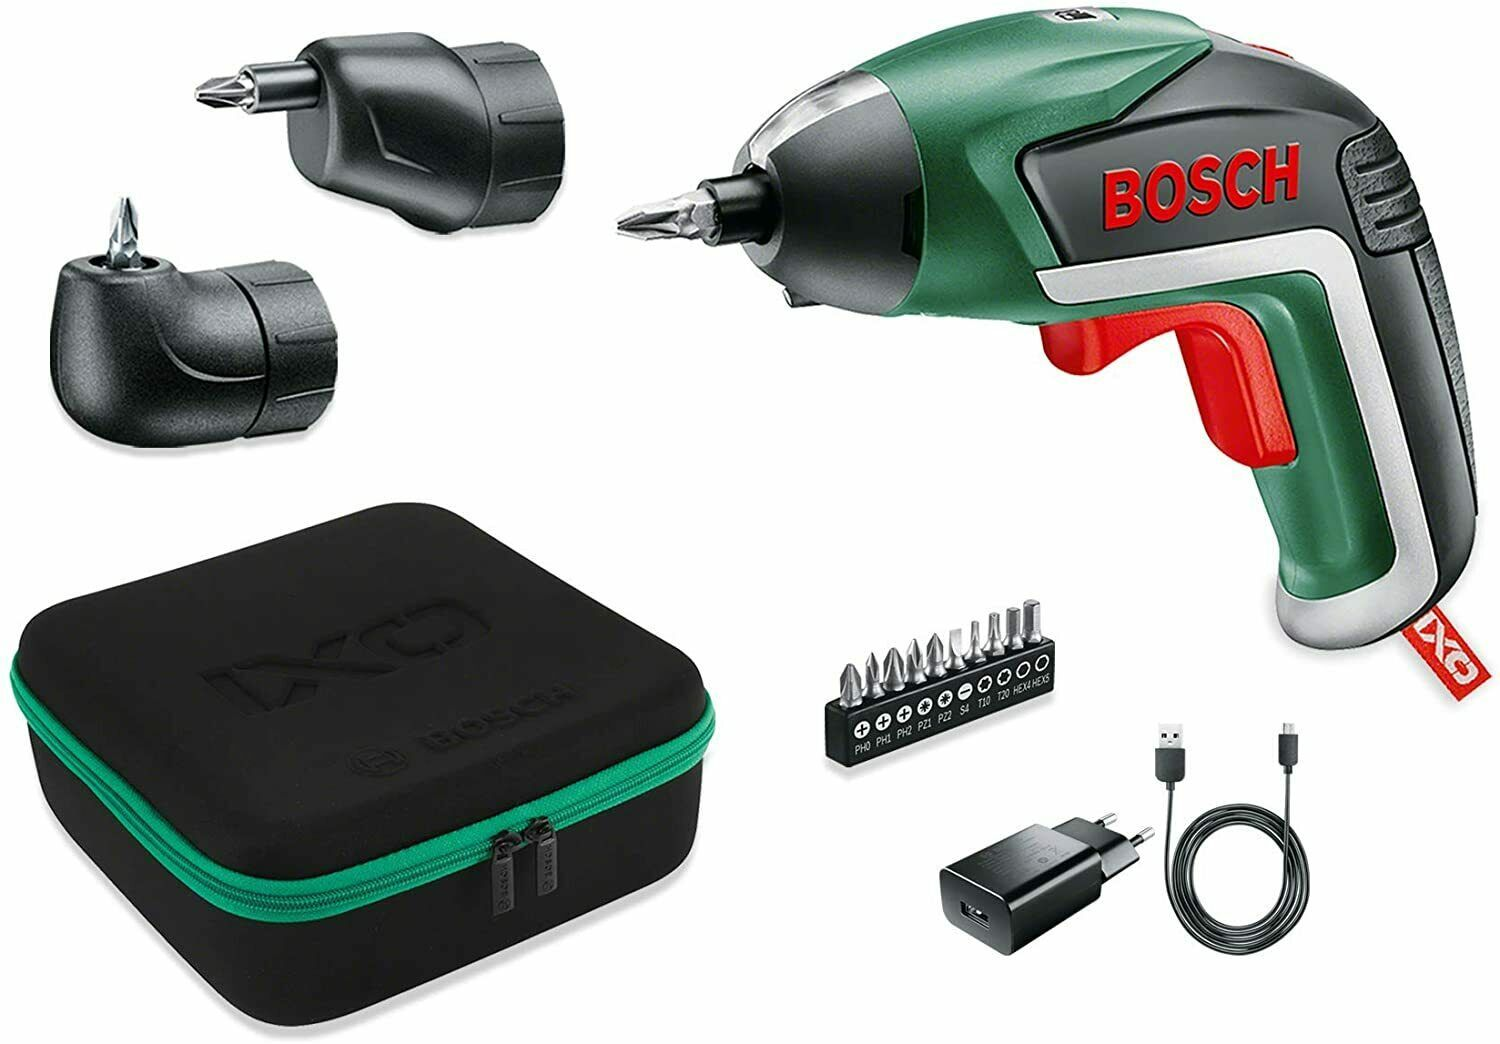 Bosch Ixo Set - Screwdriver To Battery Accessories Angle And Eccentric 10 Tips - $259.00